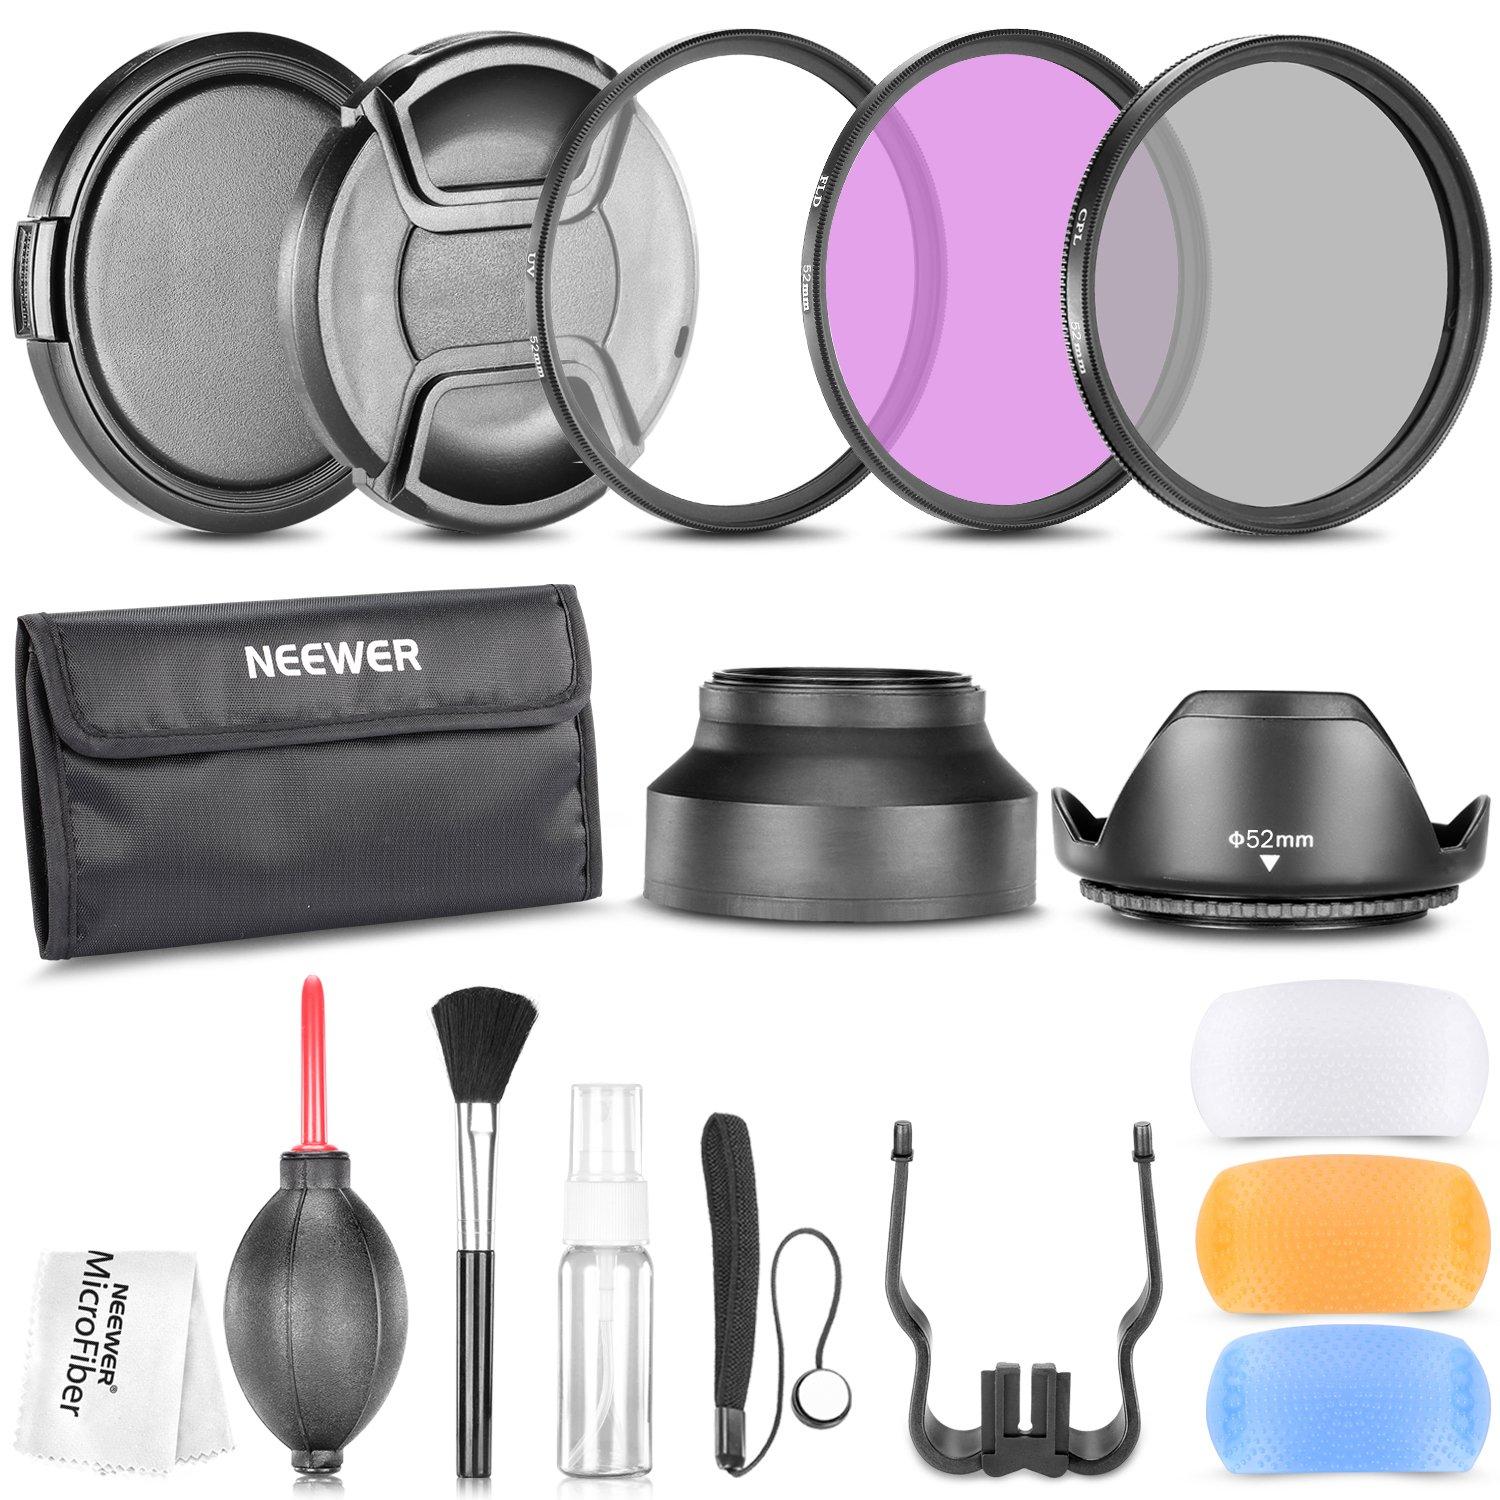 Neewer 58MM Professional Accessory Kit for CANON EOS Rebel T5i T4i T3i T3 T2i T1i XT XTi XSi SL1 DSLR Cameras- Includes: Filter Kit (UV, CPL, FLD) + Carrying Pouch + Lens Hoods (Tulip and Collapsible) + Flash Diffuser Set + Lens Caps (Center Pinch and Snap